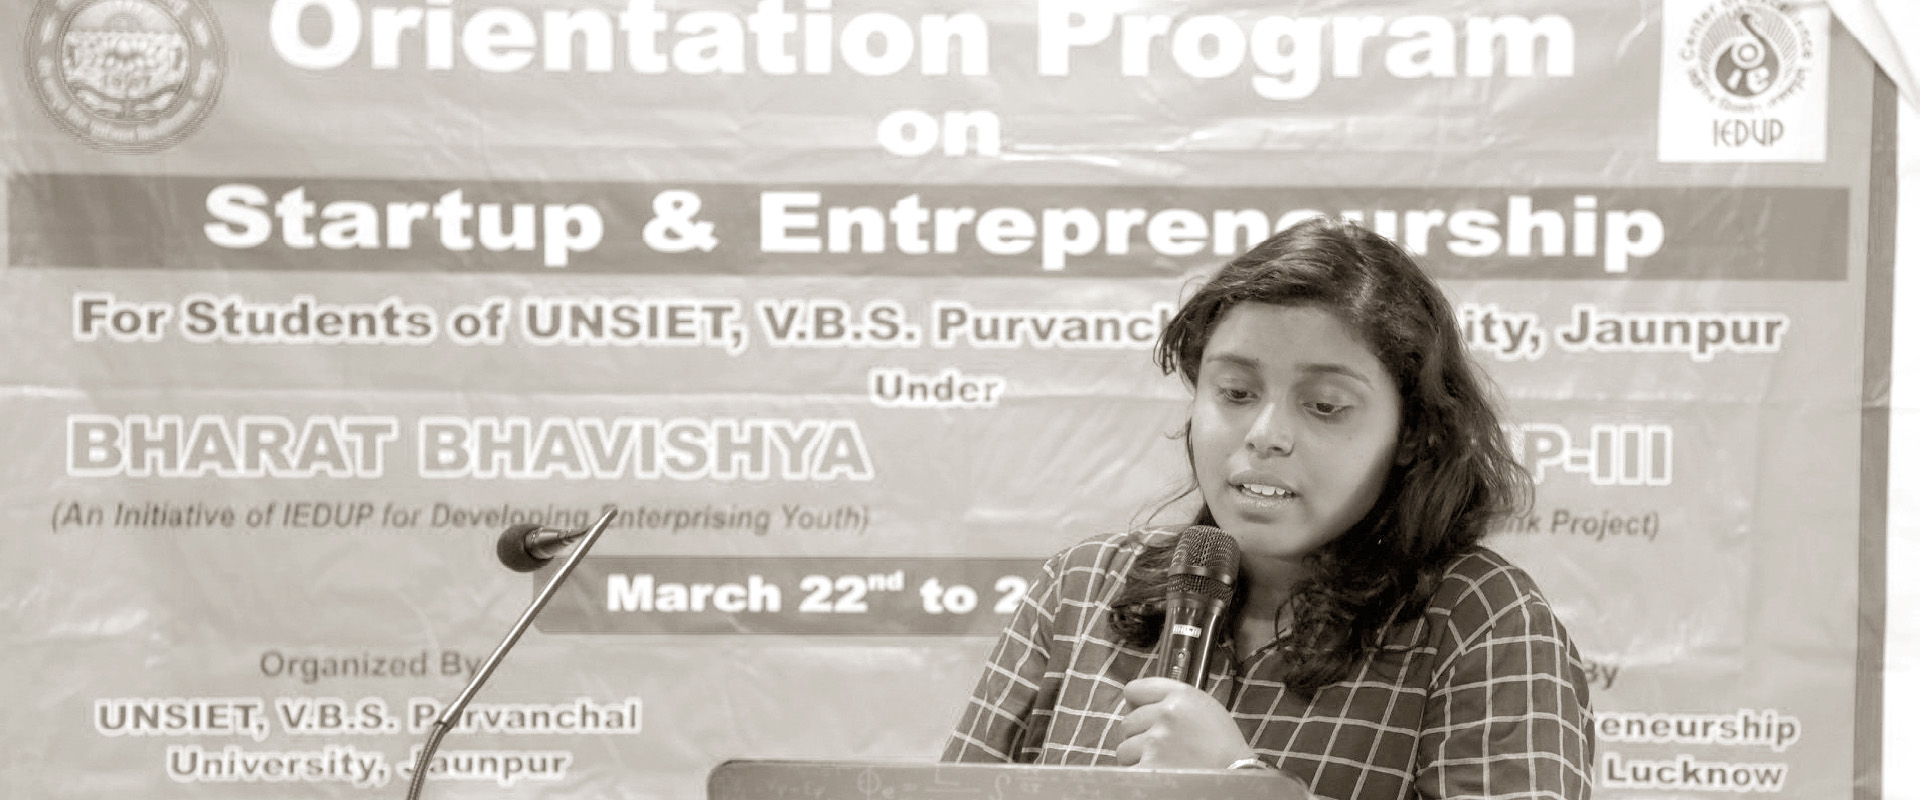 Entrepreneurship talk at Purvanchal University